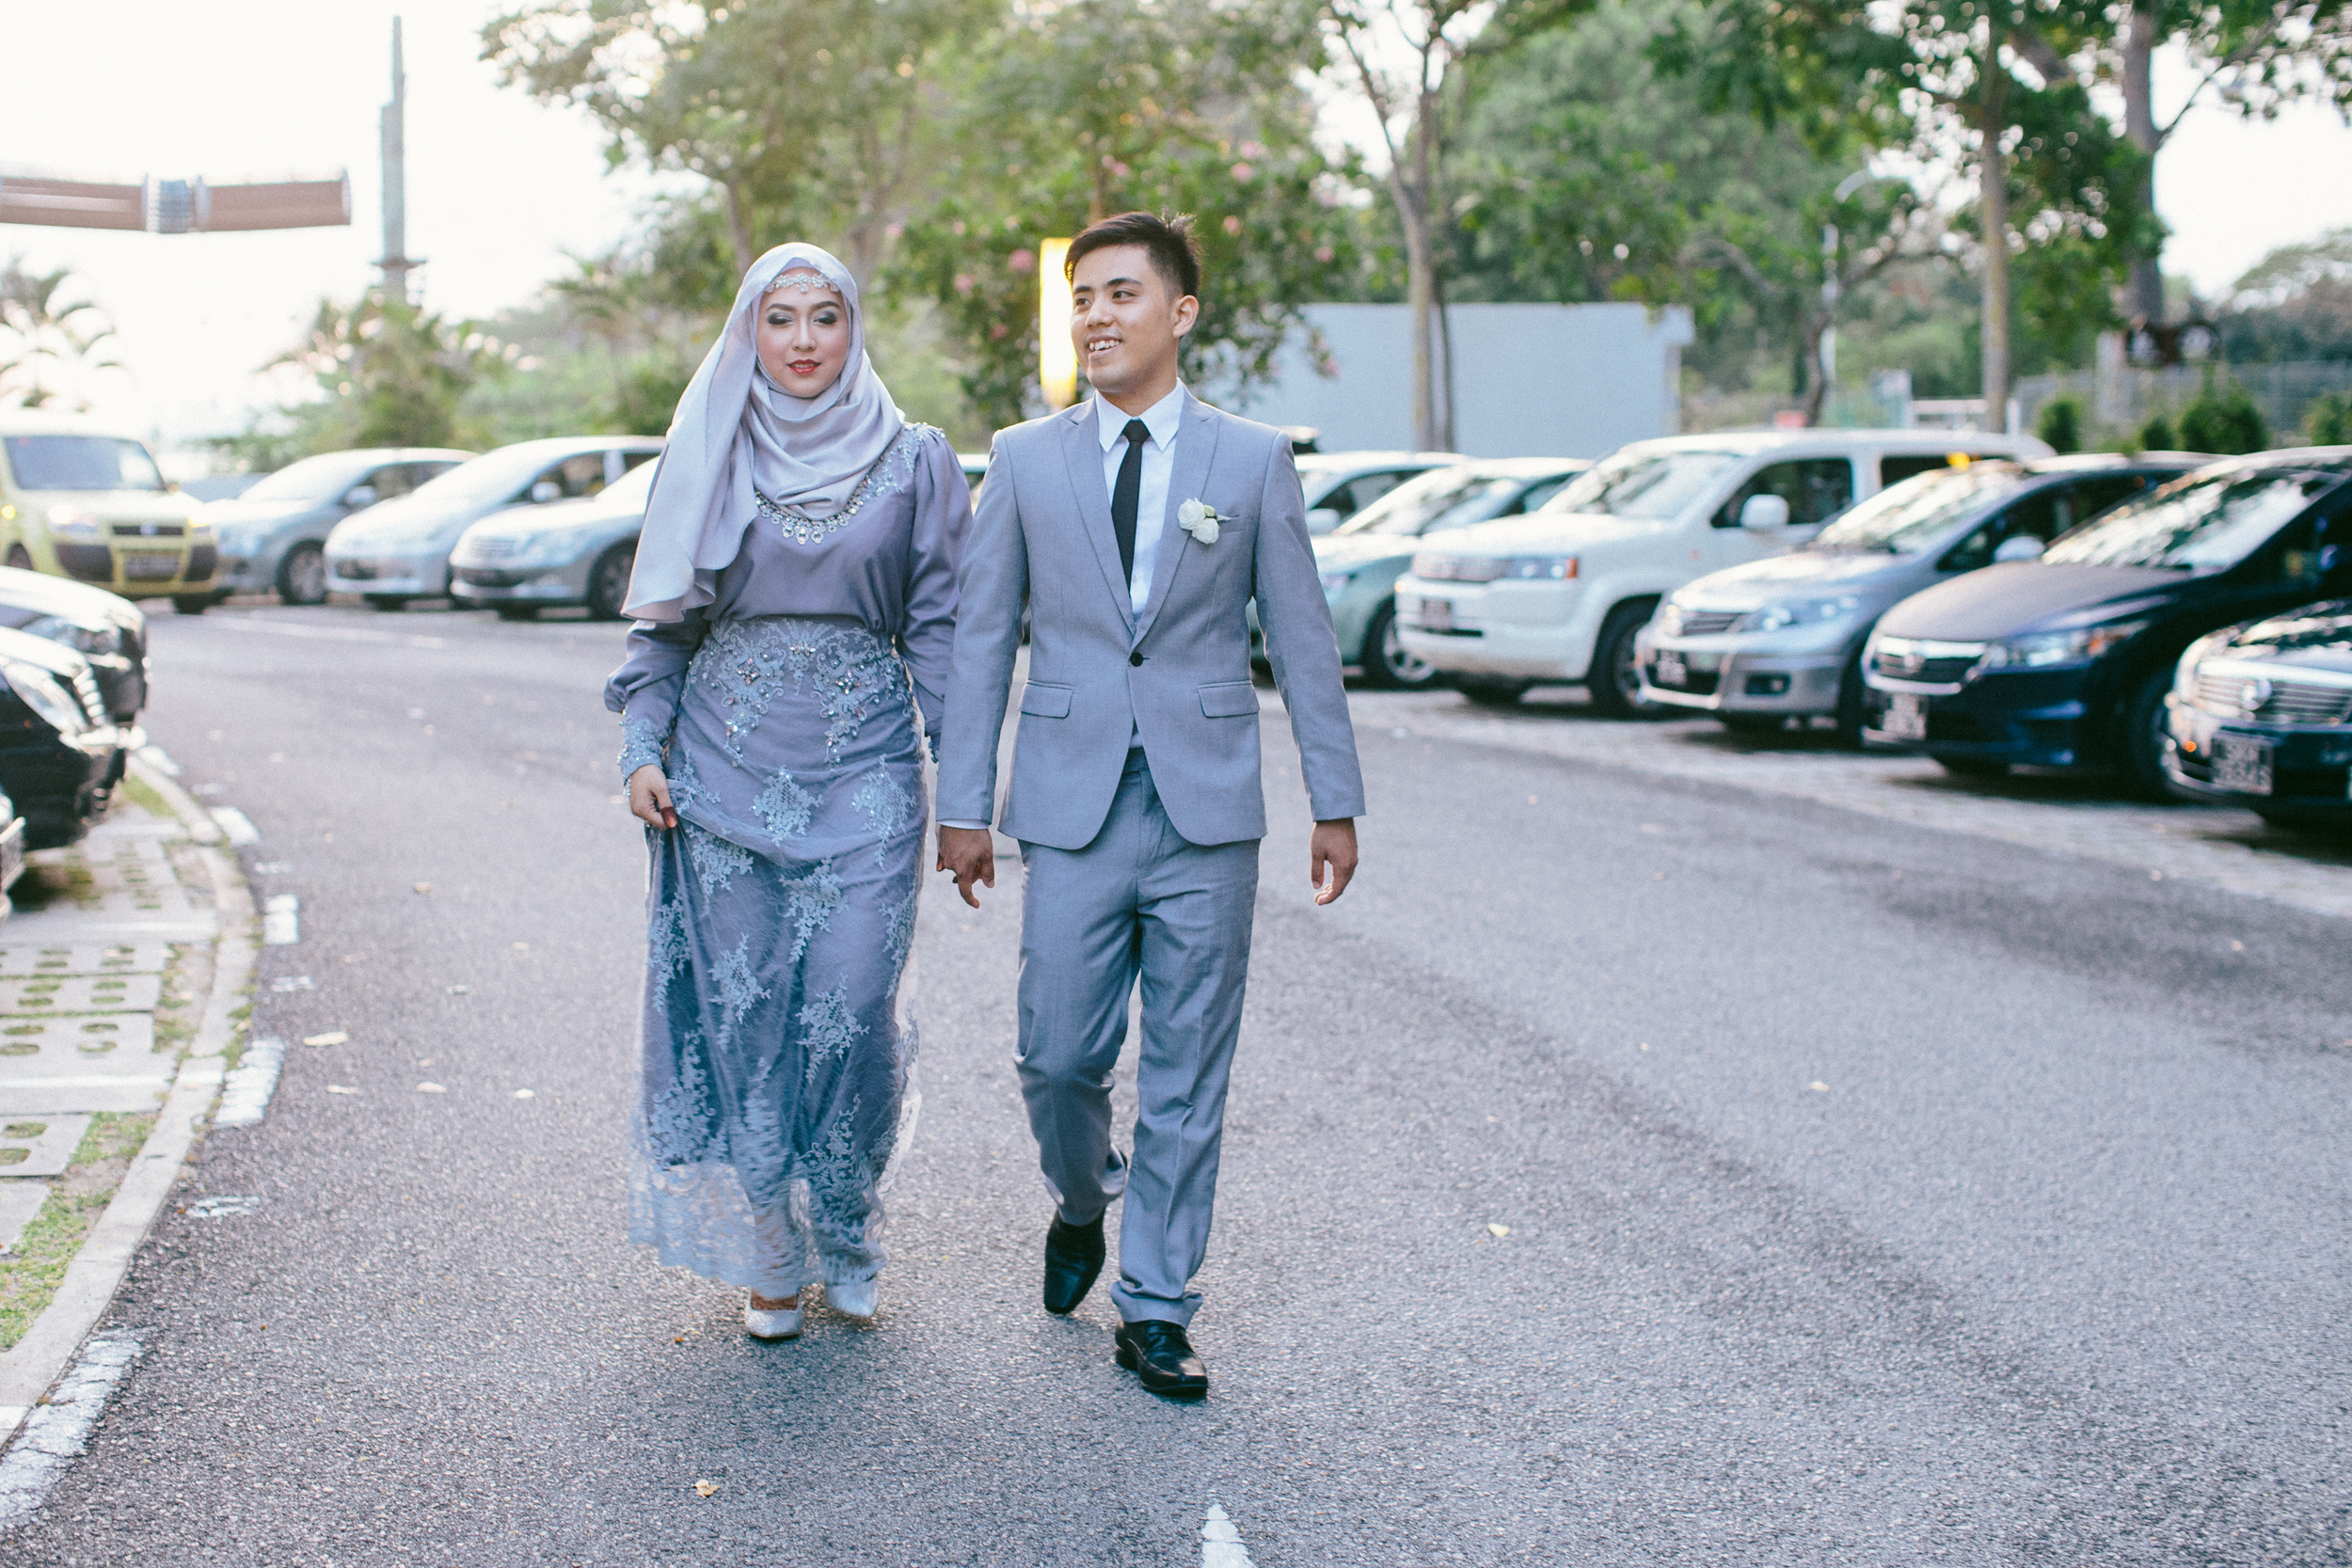 singapore-wedding-photographer-wemadethese-aisyah-helmi-59.jpg